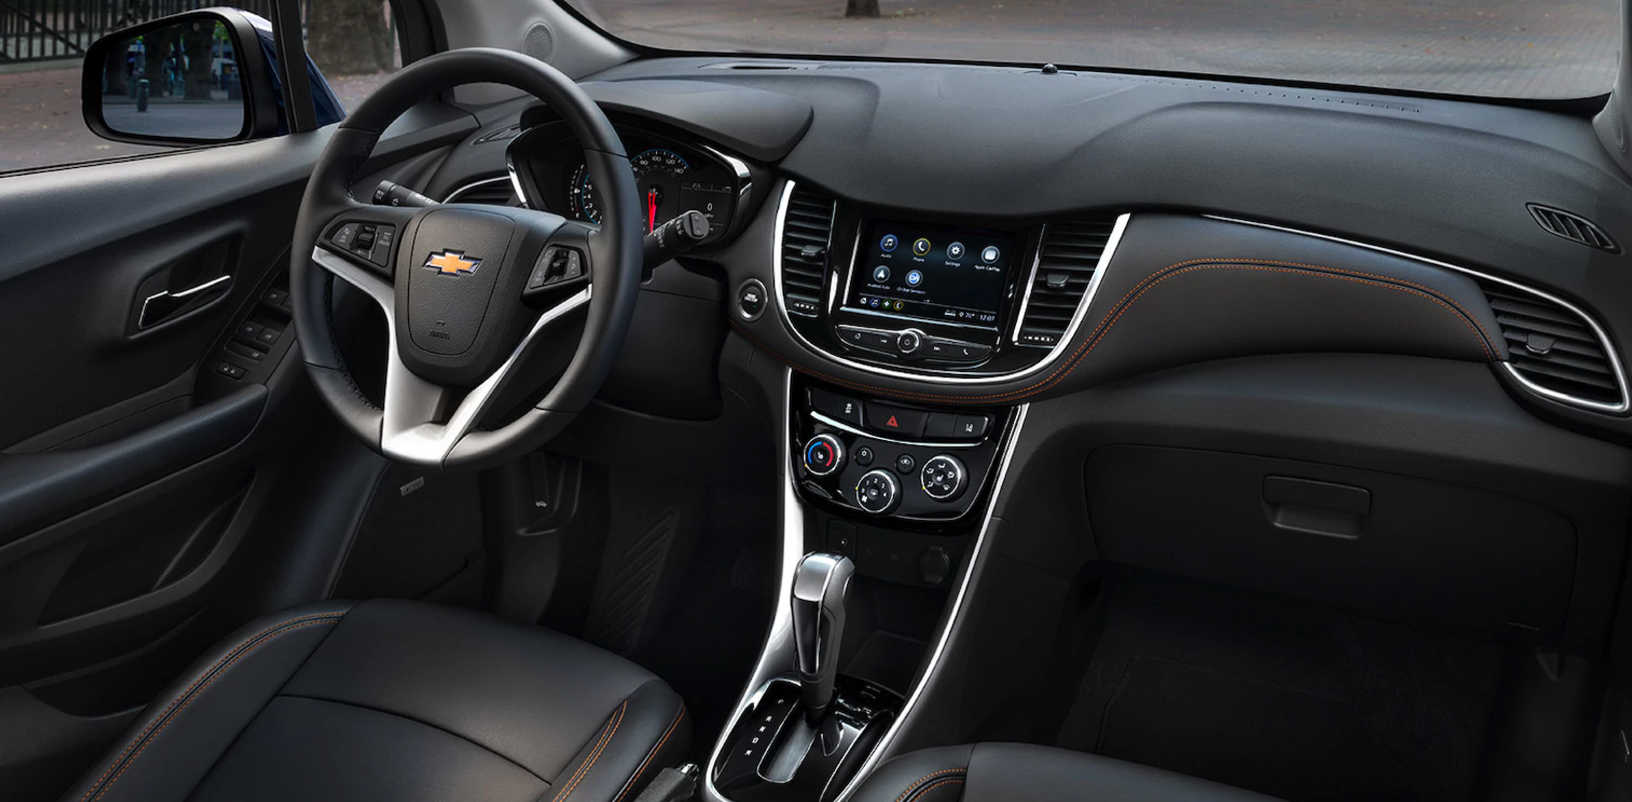 2018 chevrolet trax. Modren Chevrolet Inside The Chevrolet Trax Thereu0027s A Host Of Tech To Keep You Connected And  Plenty Smart Storage Options That Give It Spacious Atmosphere In 2018 Chevrolet Trax